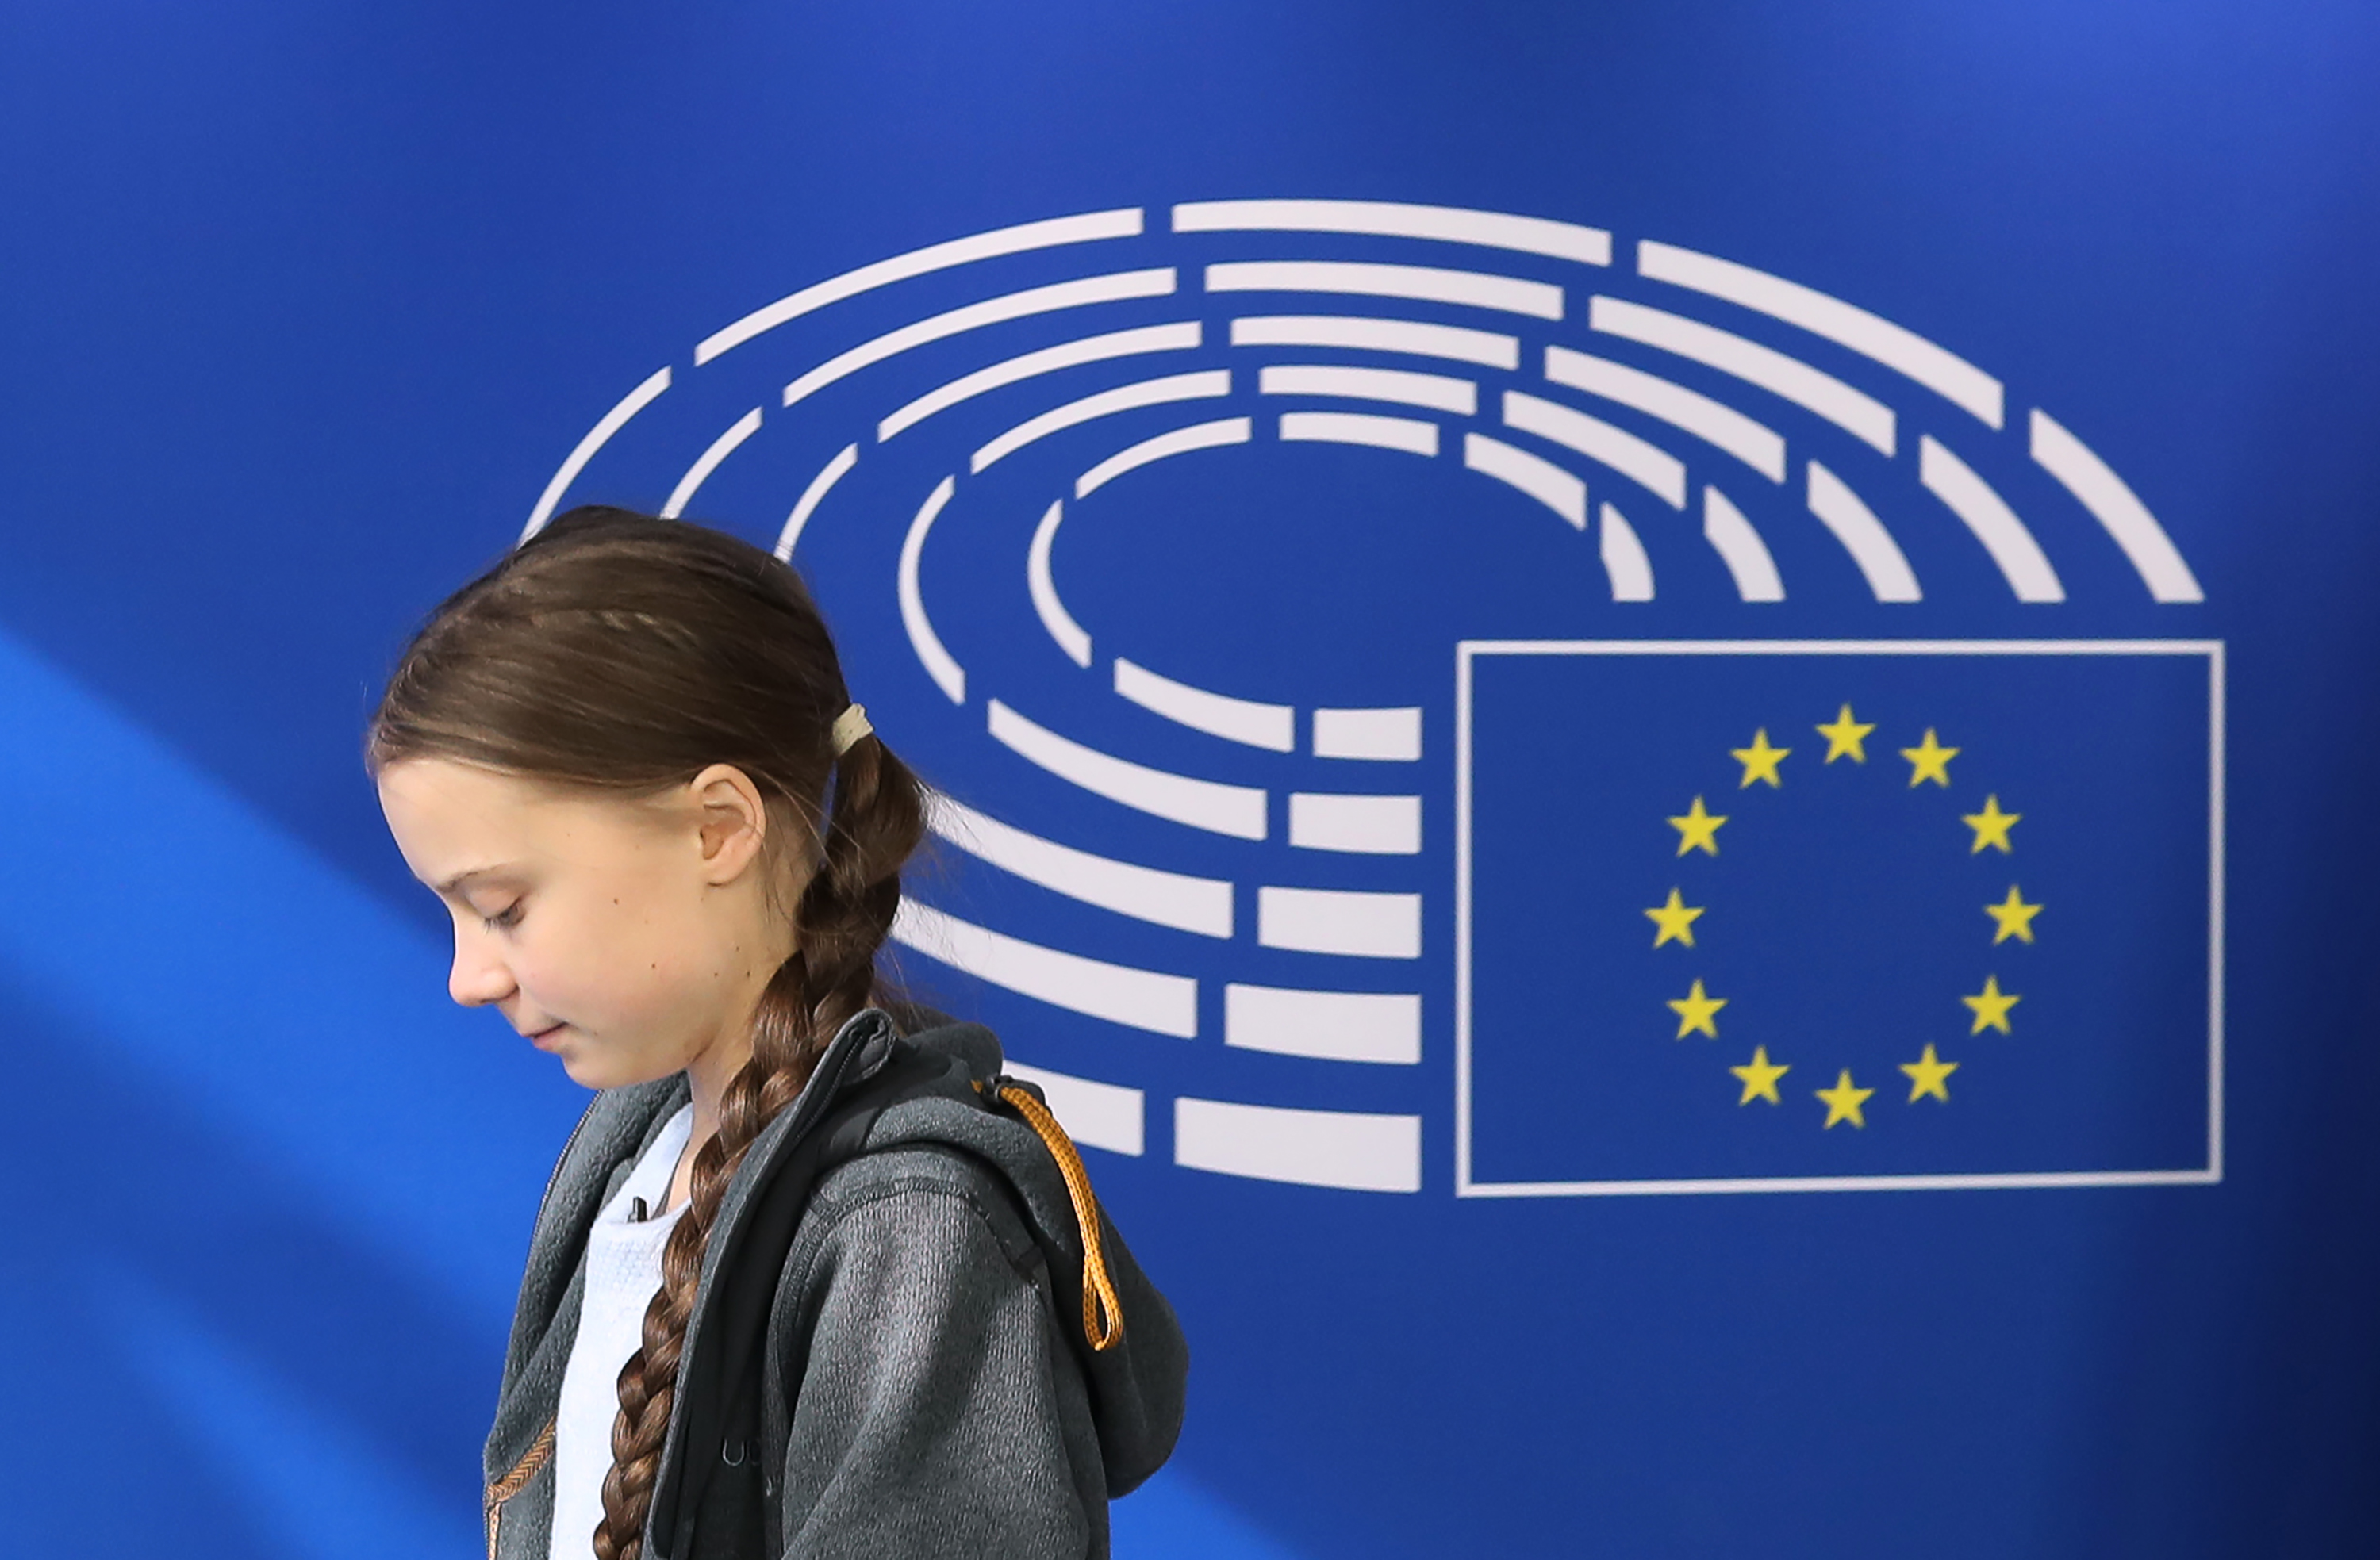 Greta Thunberg arrives at the European Parliament in Brussels on March 4, 2020, on the day the European Union unveiled a landmark law to achieve  climate neutrality  by 2050.